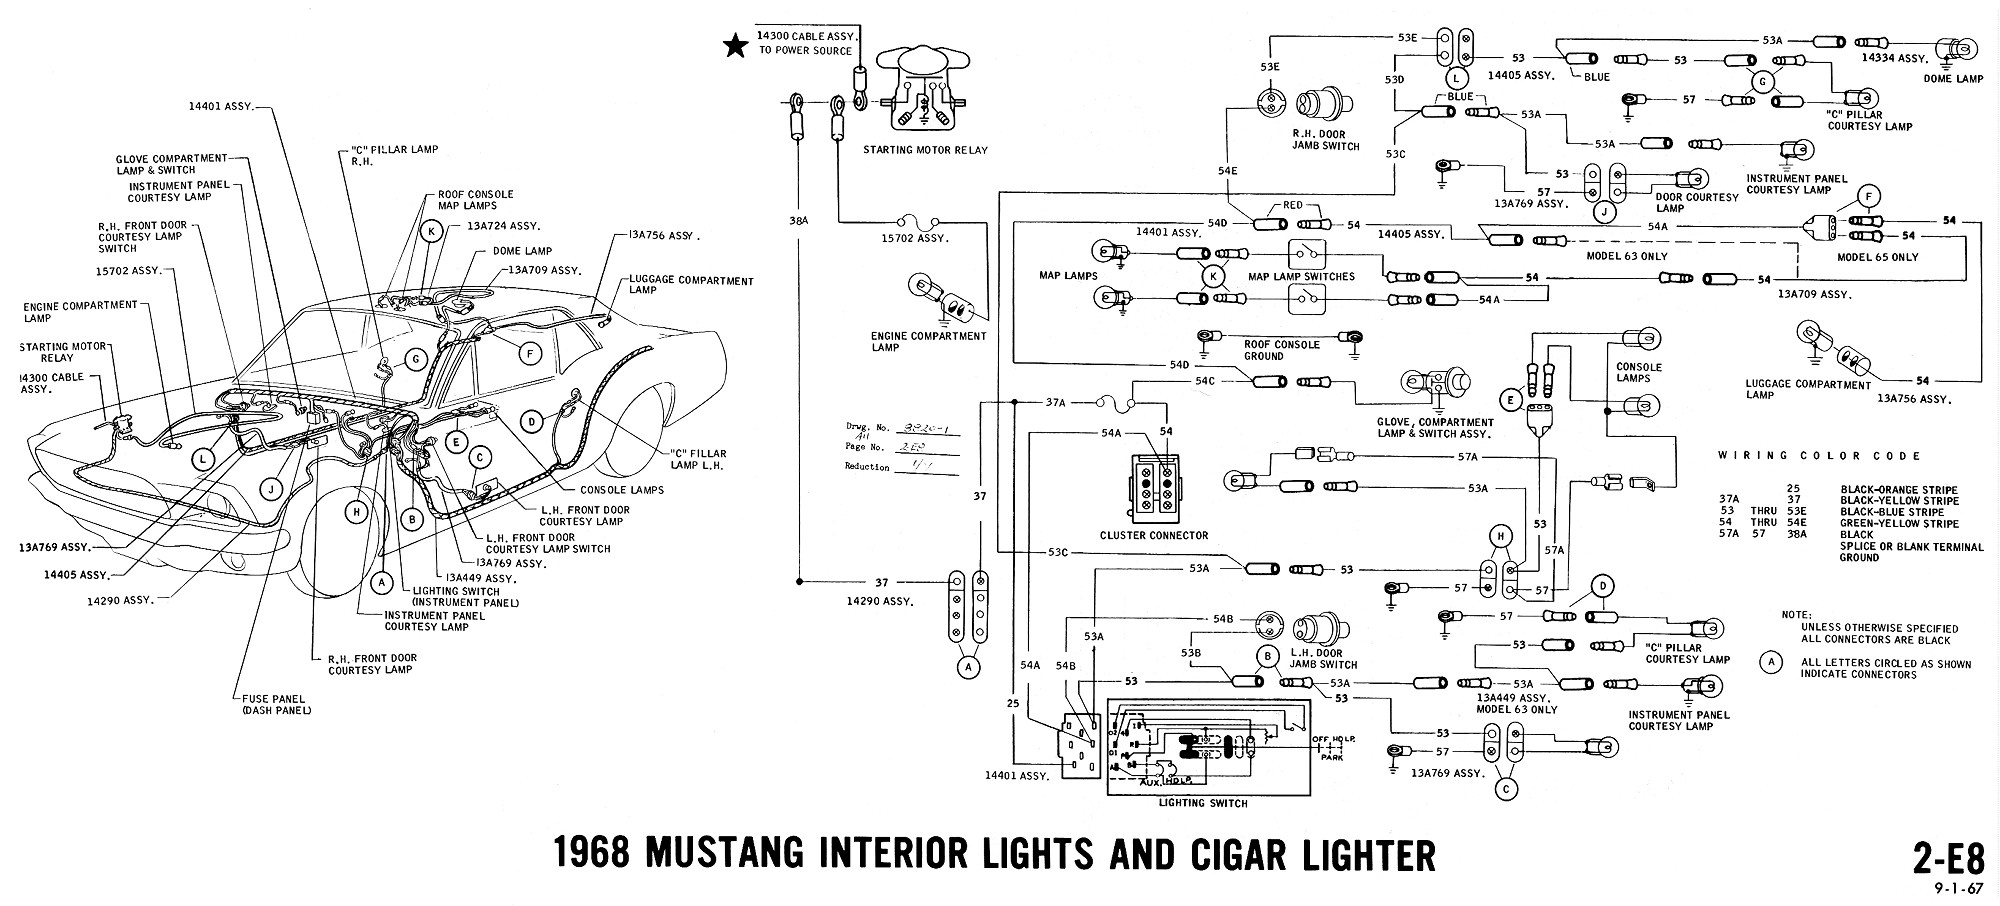 1968 mustang wiring diagram interior lights cigar lighter 68 mustang wiring diagram 1969 mustang wiring diagram online Rear Defroster Symbol at soozxer.org